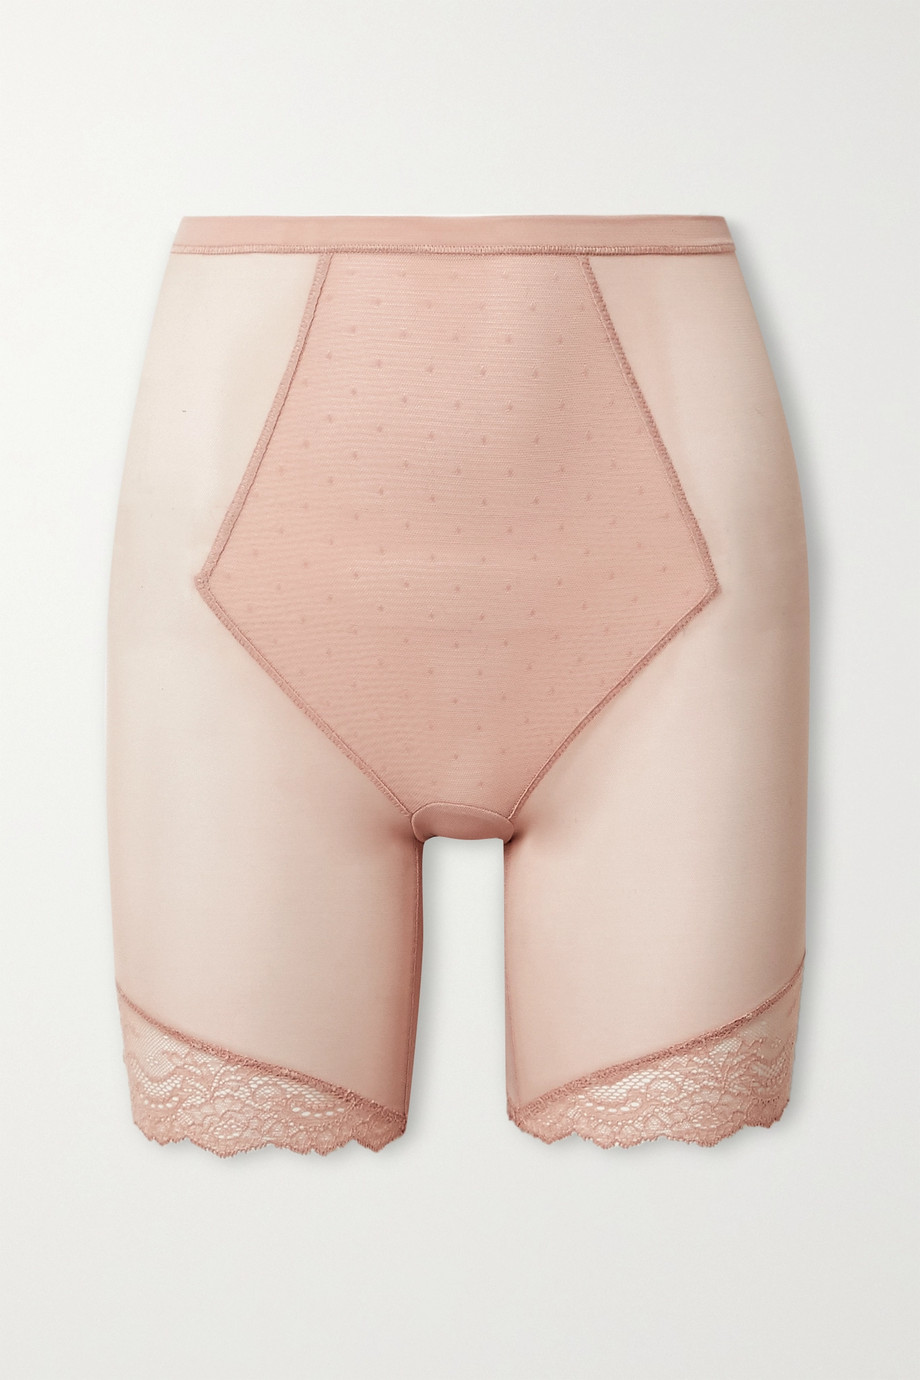 Spanx Spotlight lace-trimmed stretch-tulle shorts